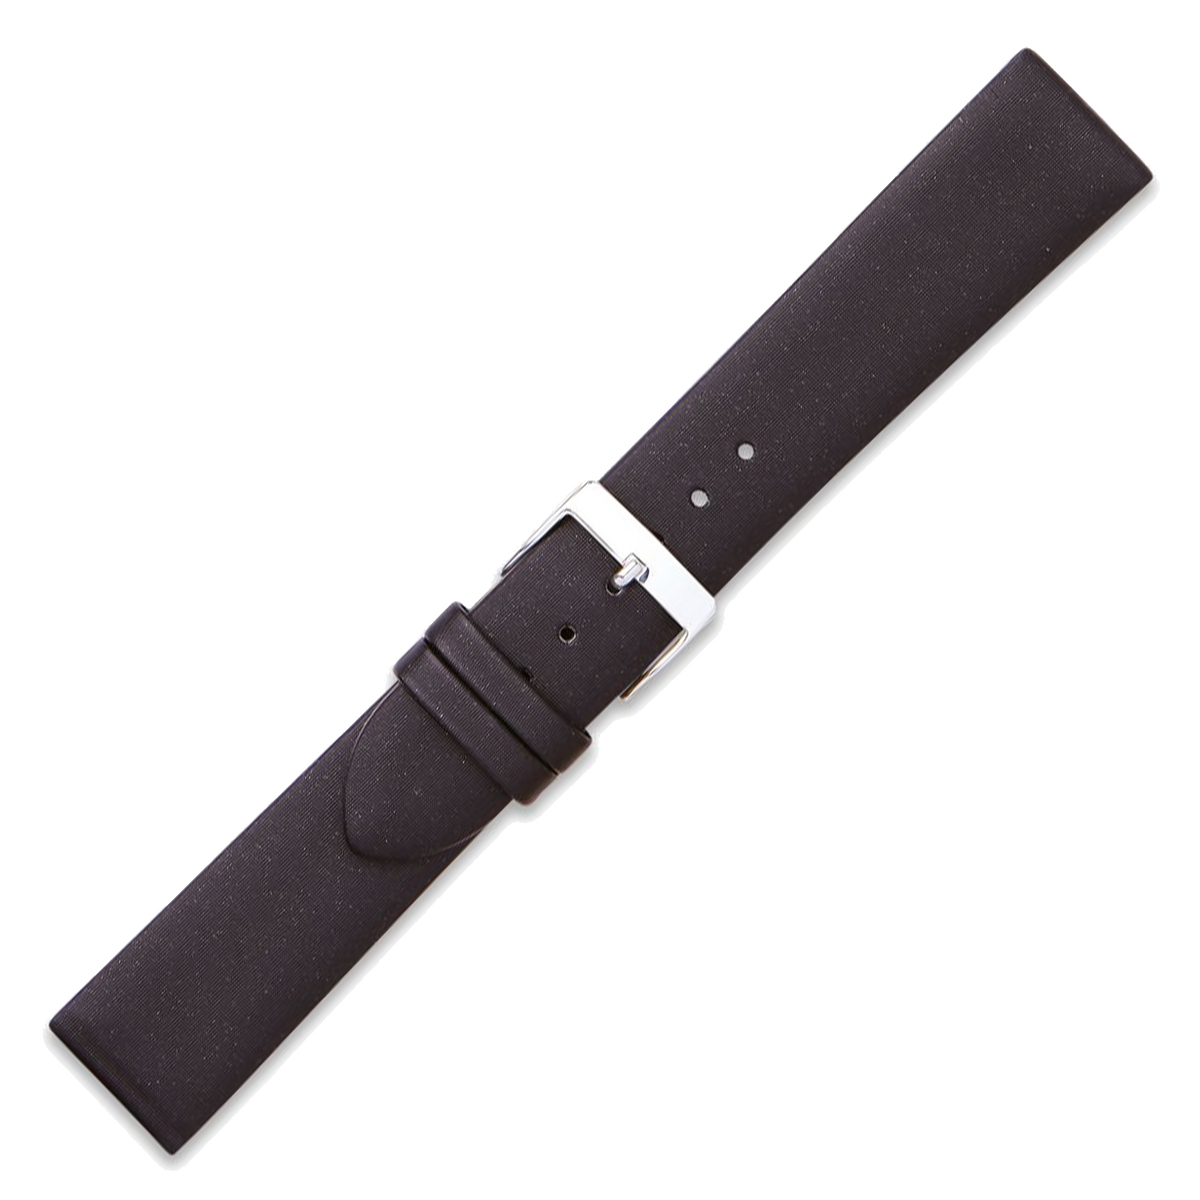 Condor Watchstrap - Satin PULeather